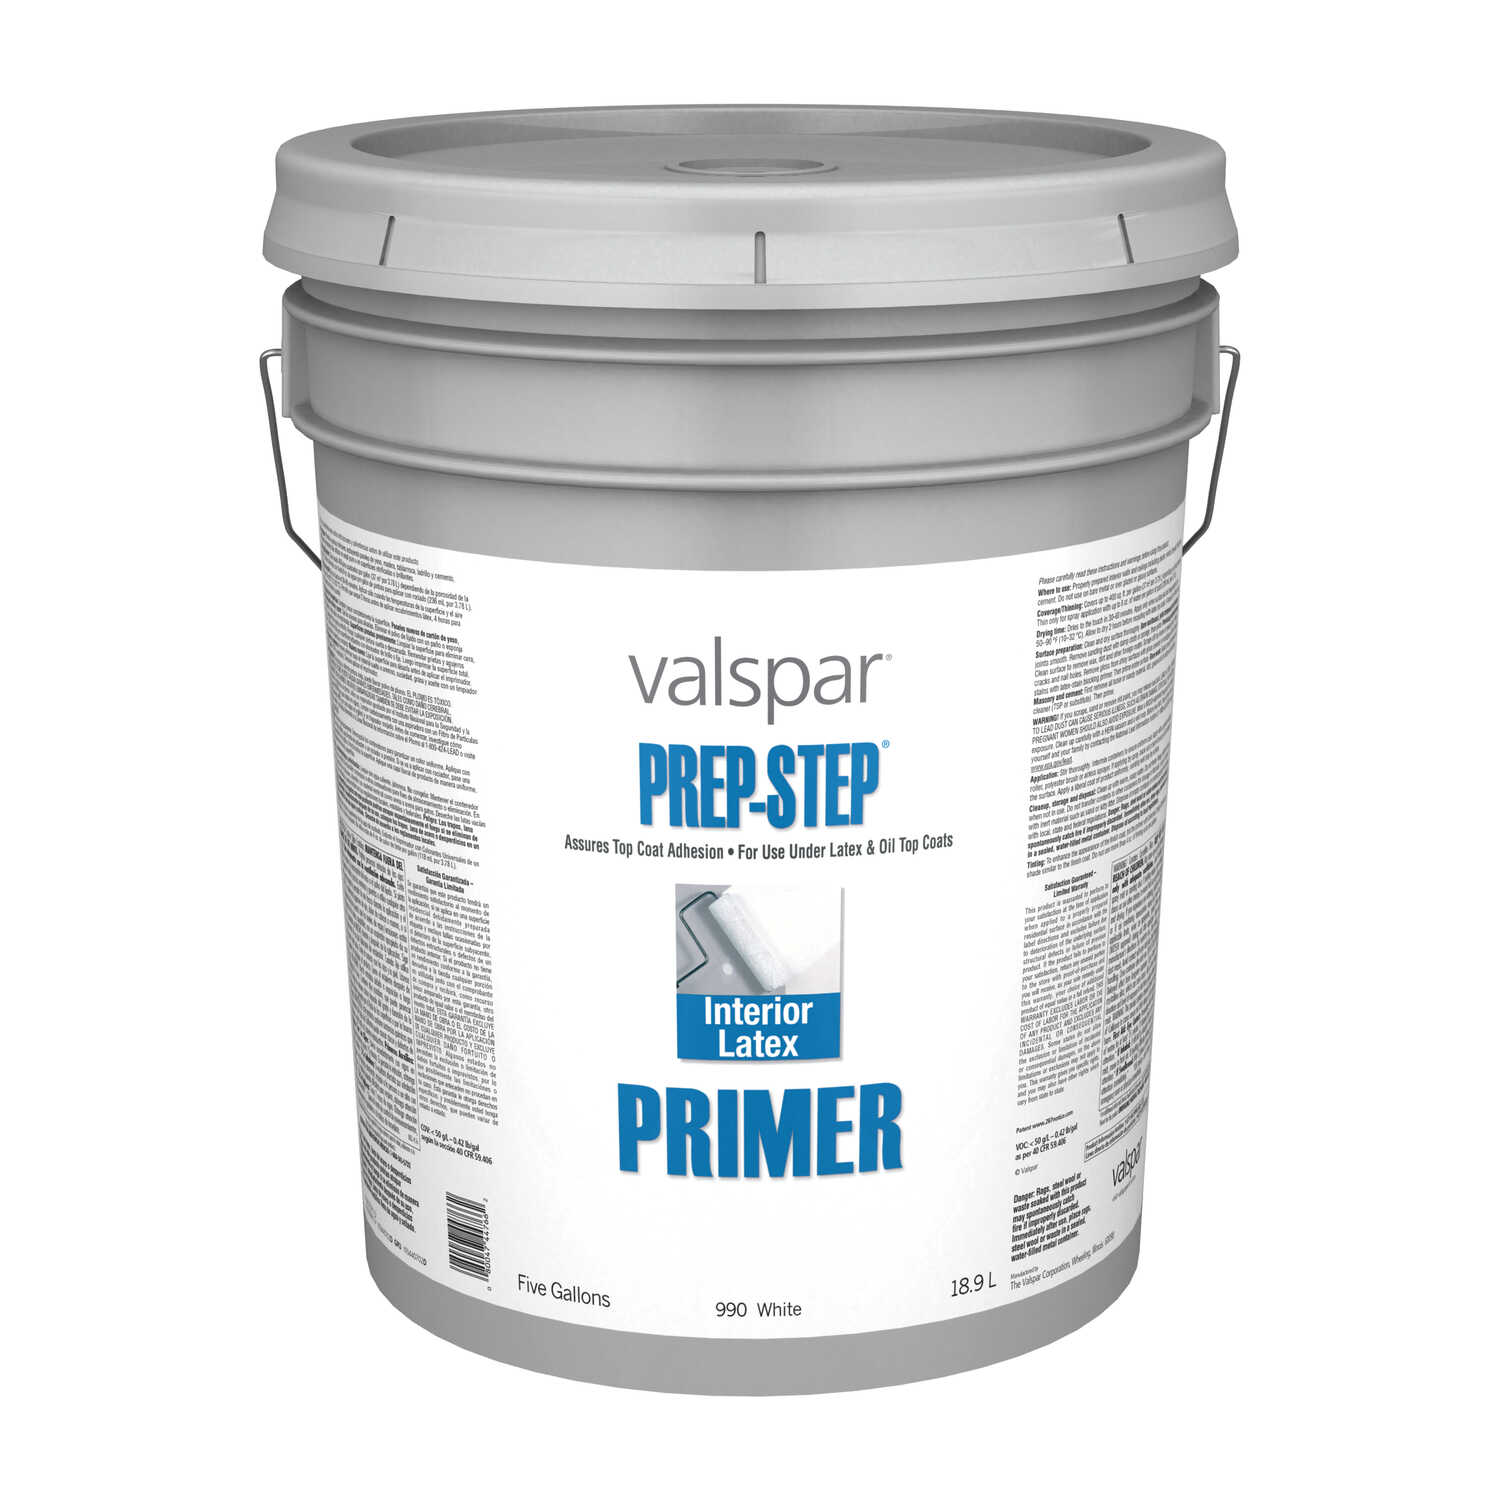 Valspar  Prep-Step  Basic White  Latex  5 gal. Primer